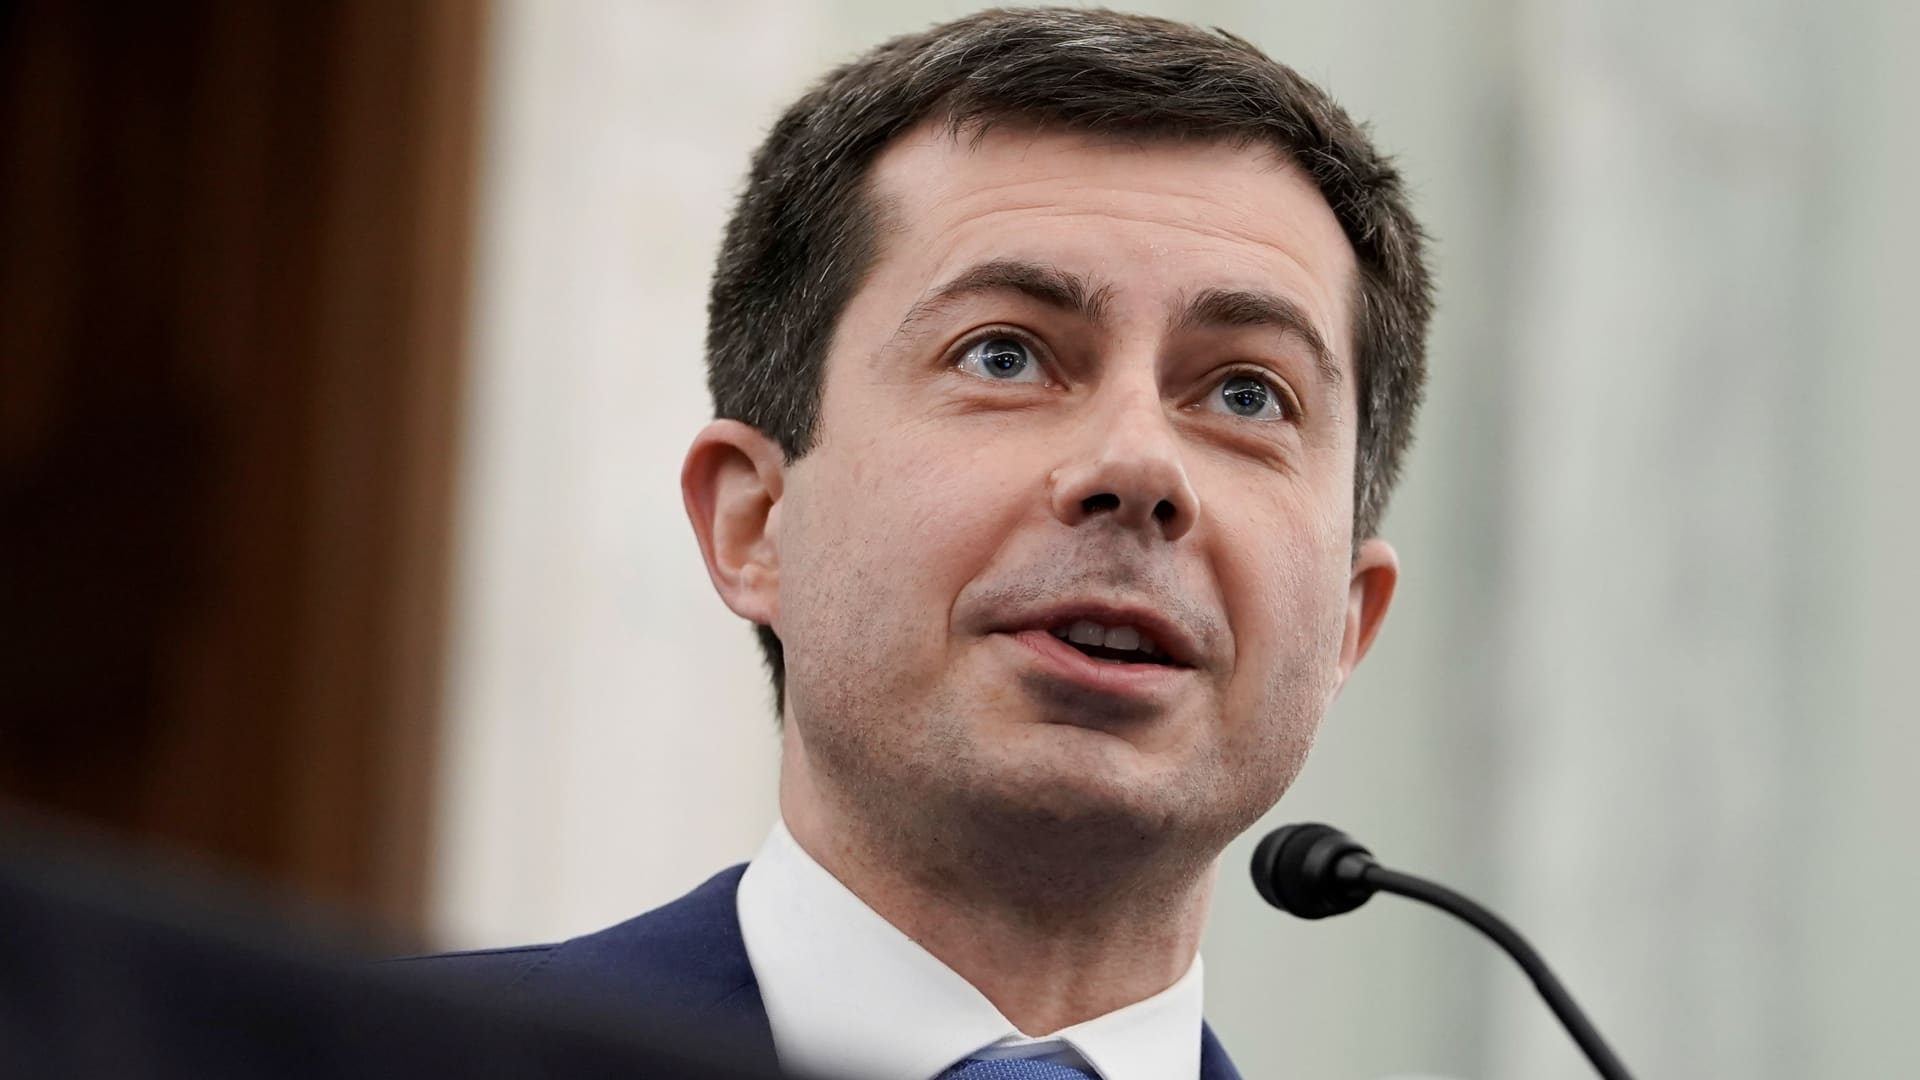 Pete Buttigieg speaks at the Senate Commerce, Science, and Transportation nomination hearings to examine his expected nomination to be Secretary of Transportation in Washington.